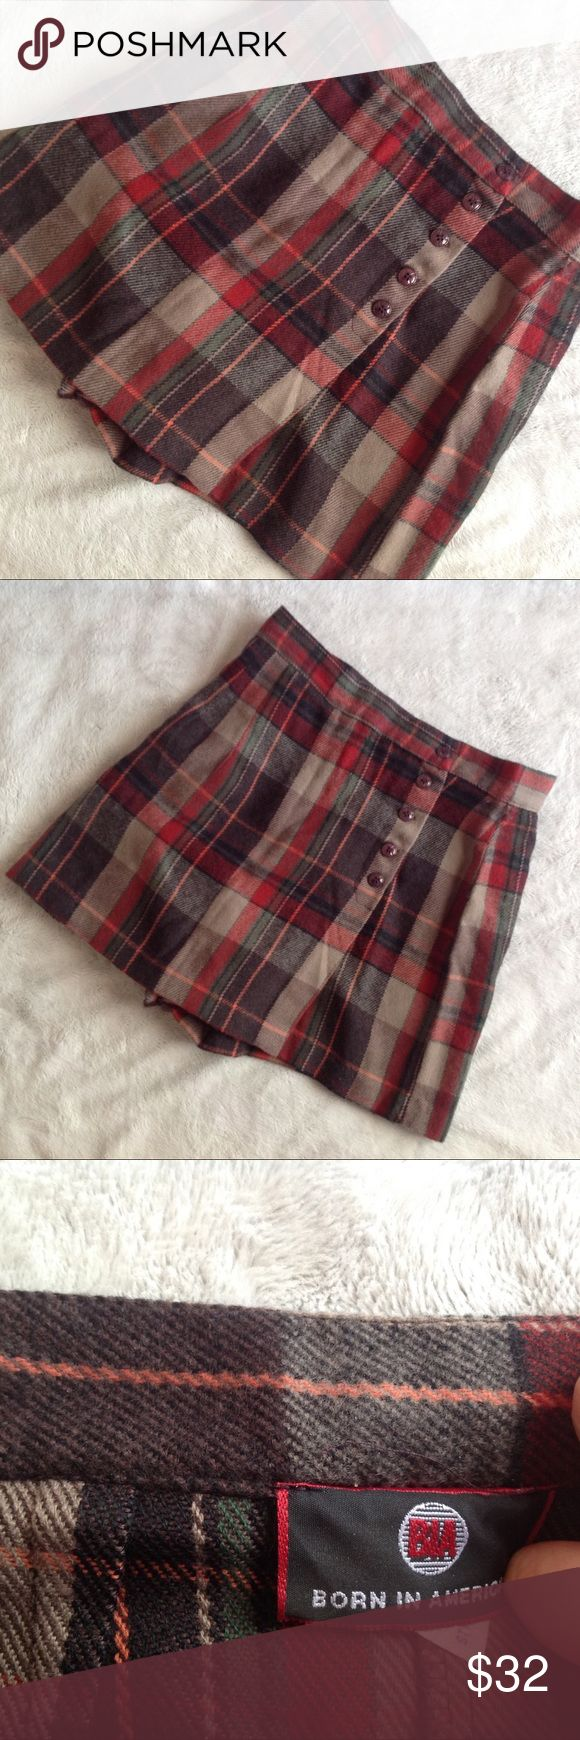 Vintage 90s Plaid Mini Skort Schoolgirl Great vintage condition. Skort (shorts under a skirt) in soft plaid with button front. Red, green, black and beige plaid. Zipper on shorts underneath skirt flap. Brand in Born in America BIA. Likely circa mid 90s based on style and manufacturer tag. Made in USA. Size tag says 7/8 but listed as small based on measurements & fit, see photos. Vintage Skirts